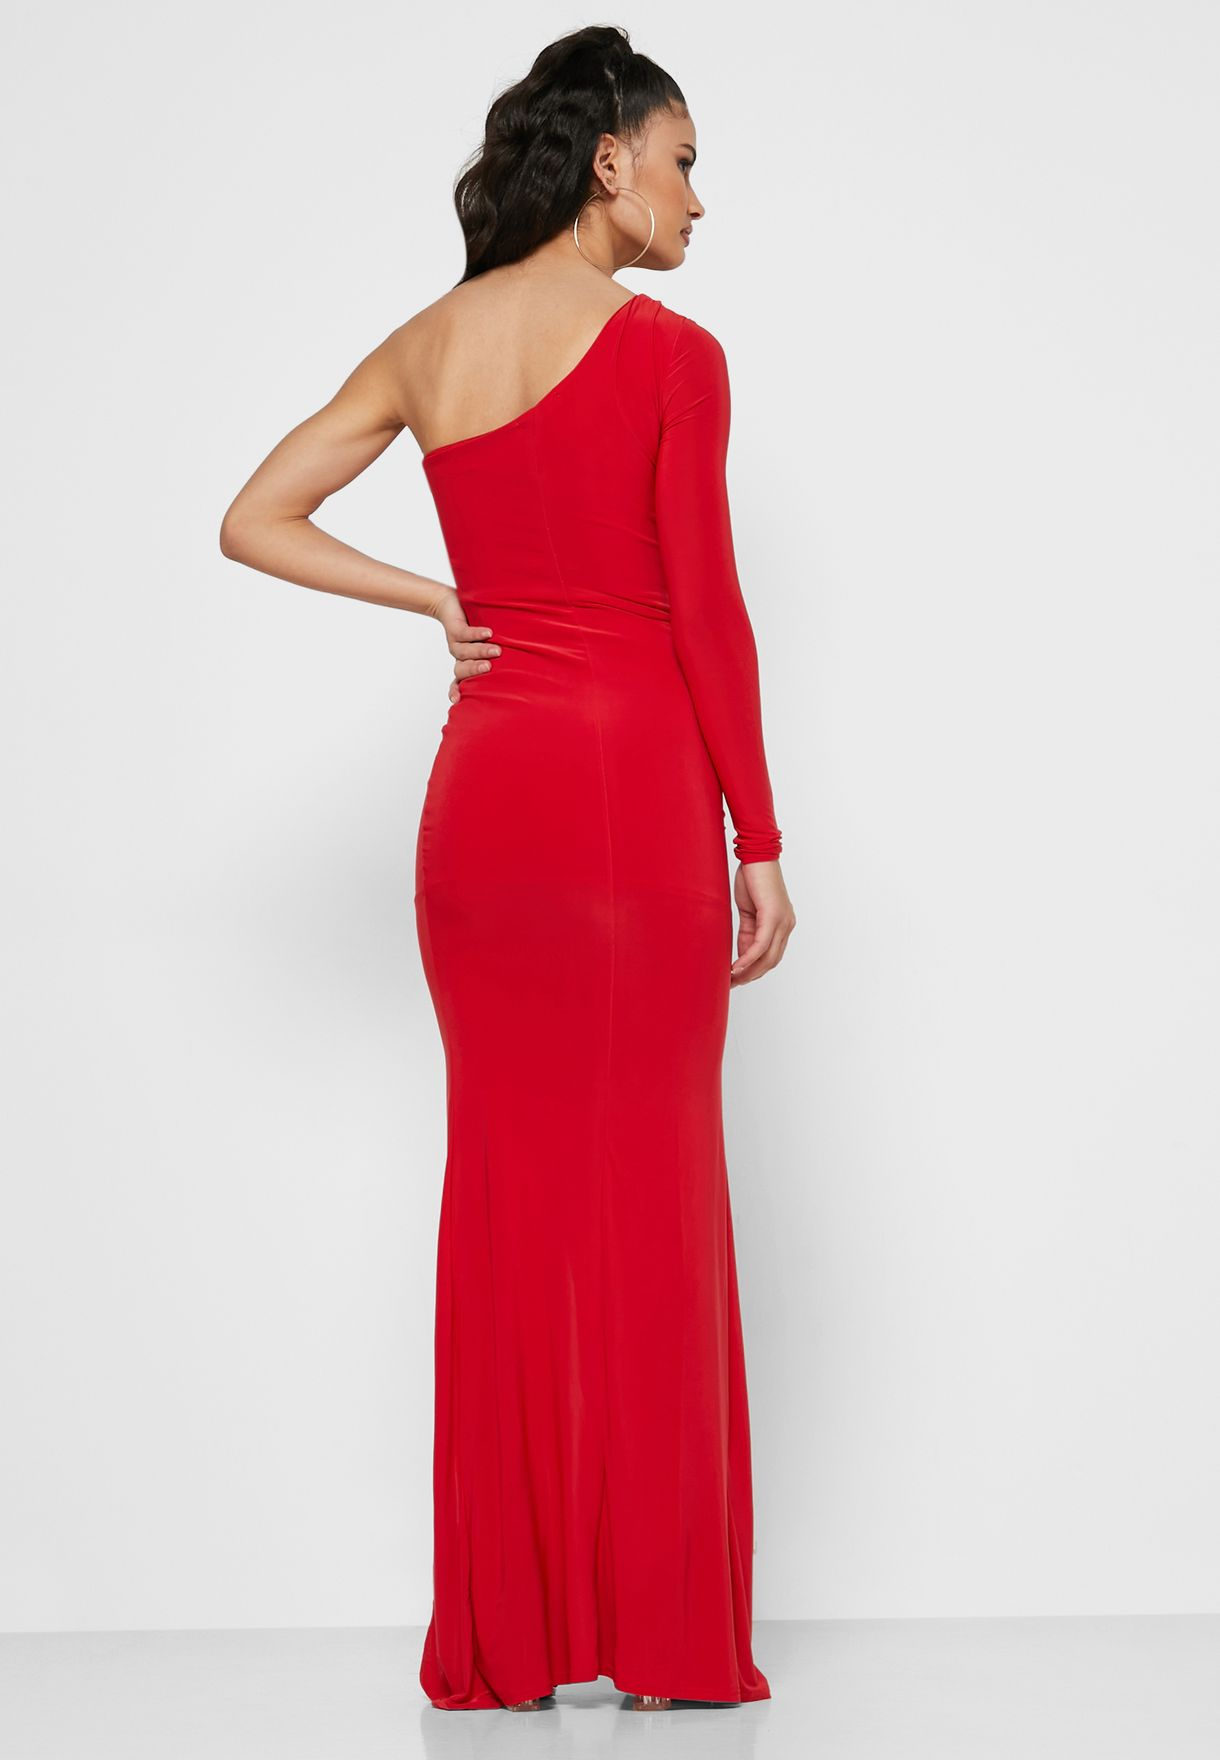 Missguided One Shoulder Ruched Maxi Dress - Women Clothing 5zatG